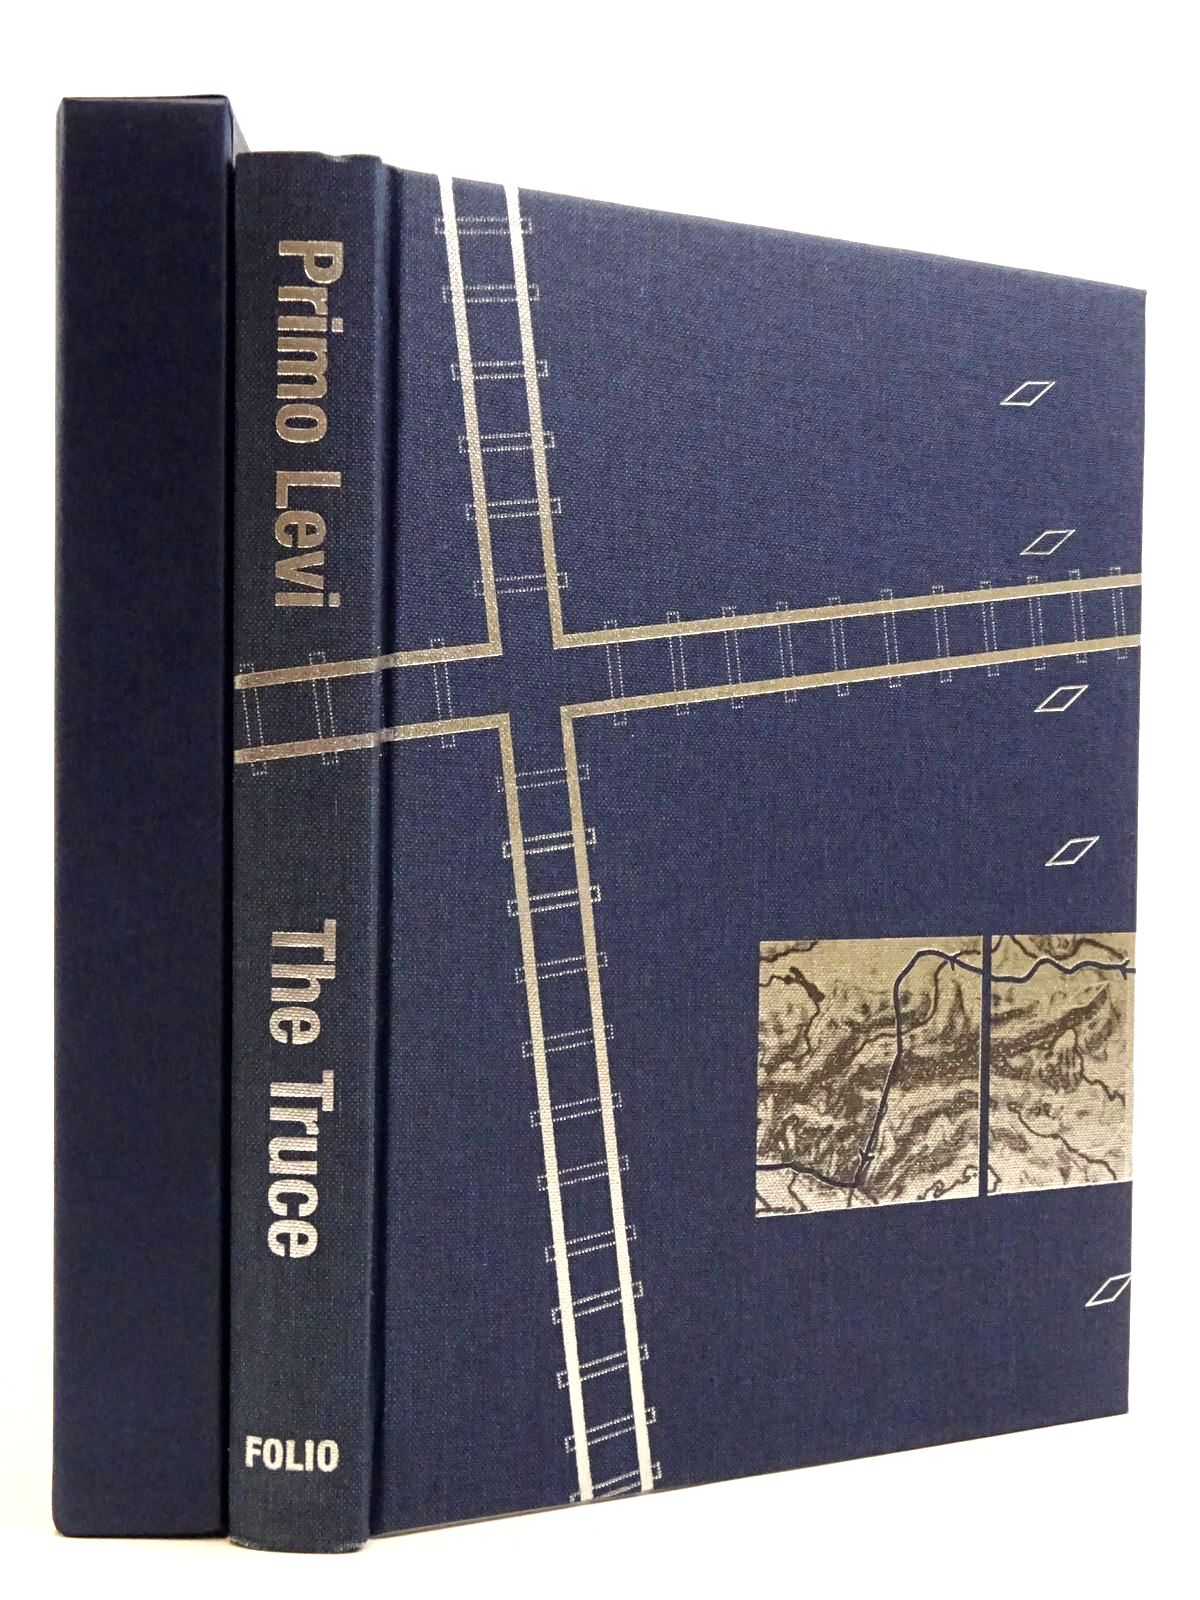 Photo of THE TRUCE written by Levi, Primo illustrated by Joseph, Jane published by Folio Society (STOCK CODE: 2131301)  for sale by Stella & Rose's Books